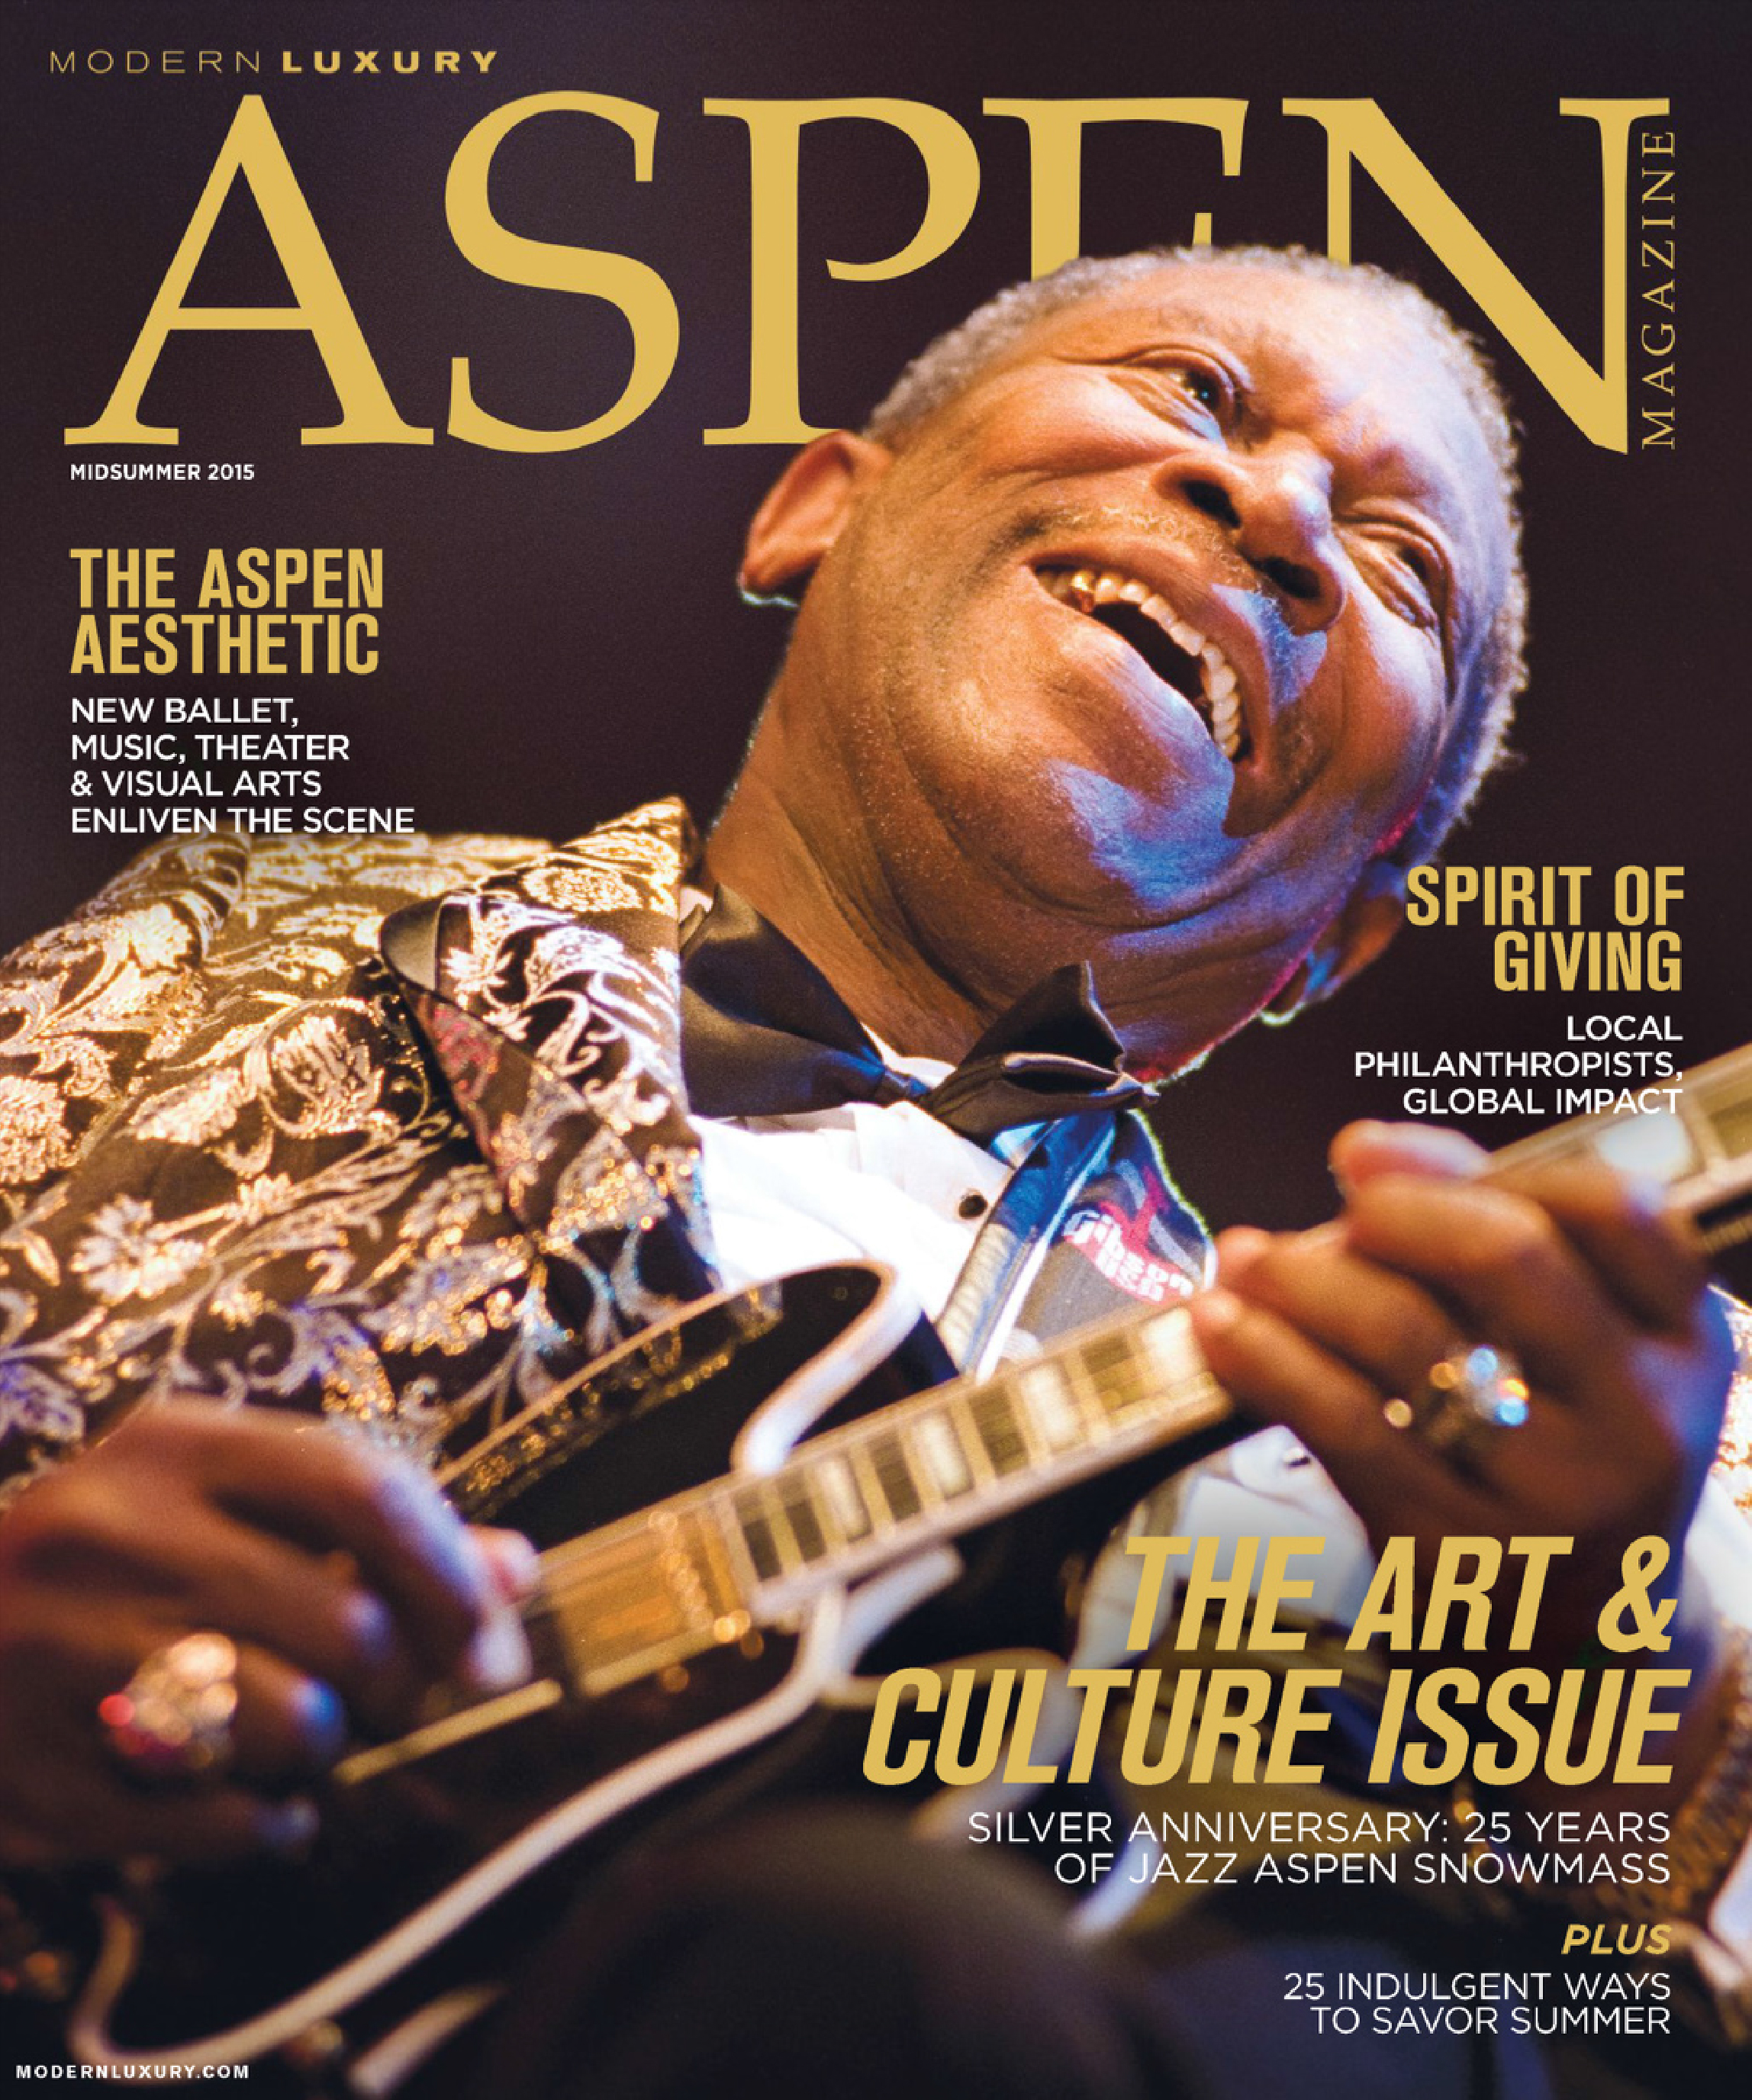 Editor and marketing work: Aspen Magazine's Midsummer Issue  2015